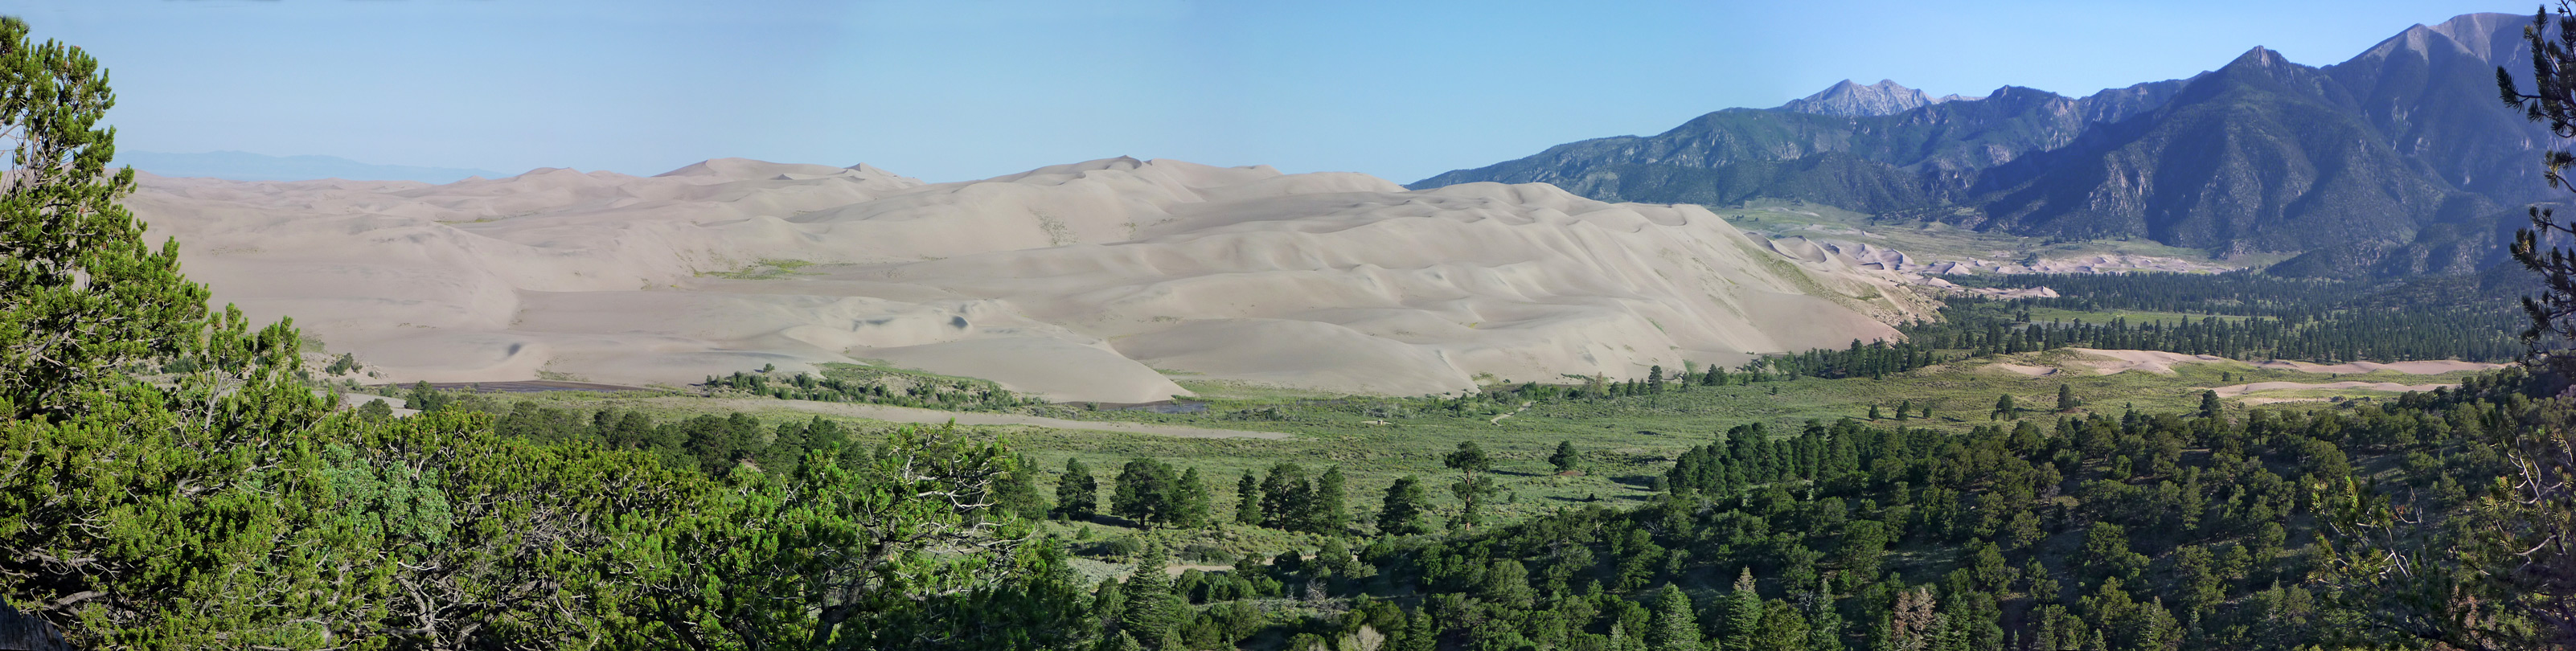 Dunes Overlook Trail: Great Sand Dunes National Park and Preserve ...